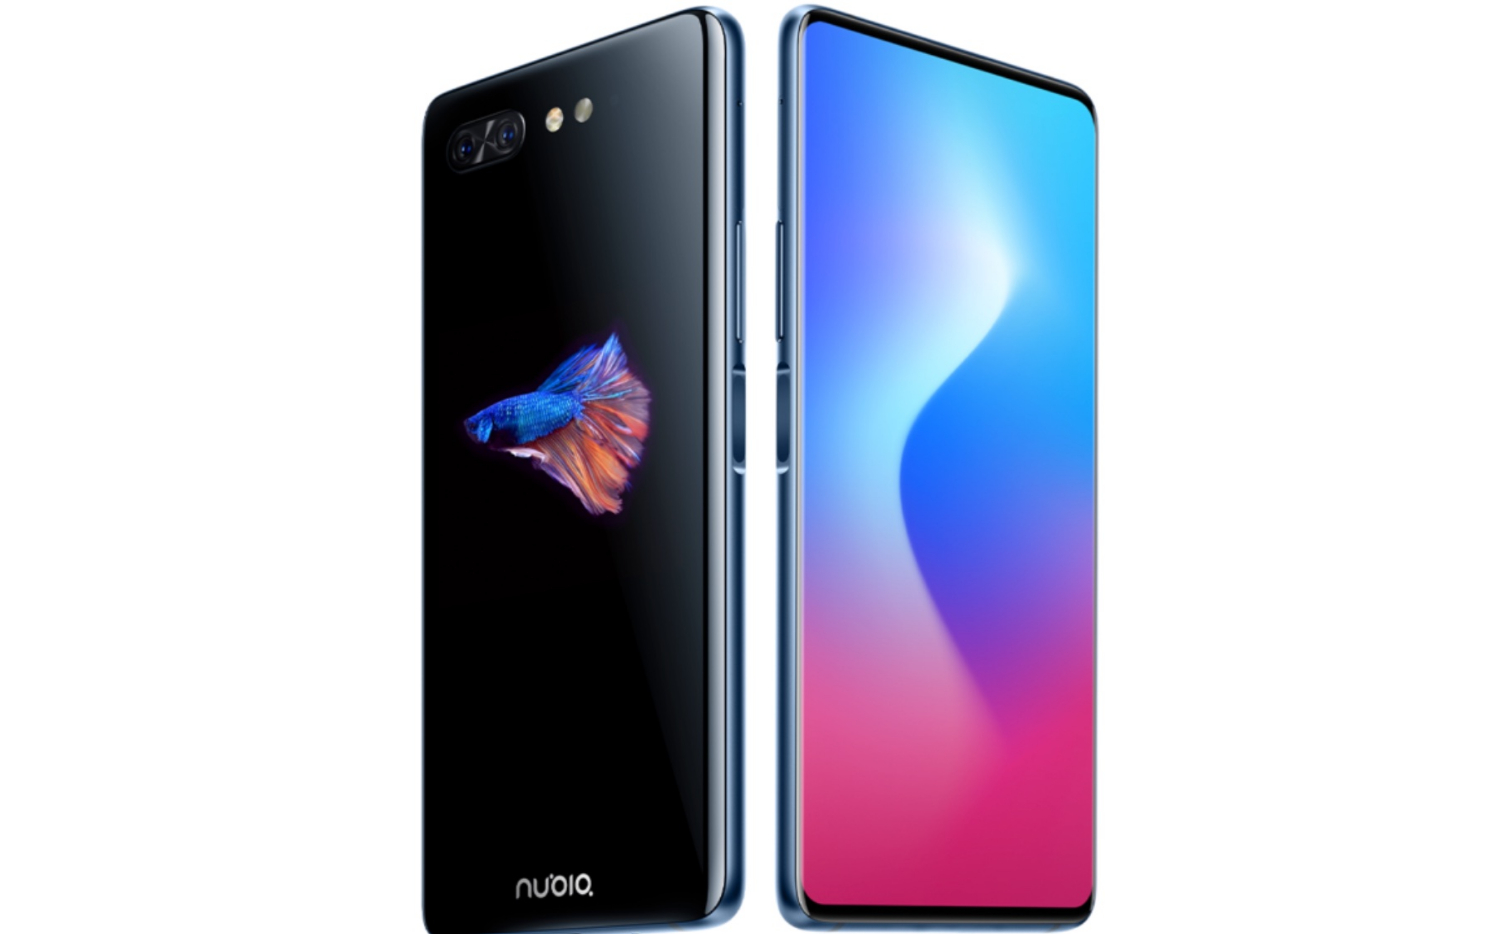 cbdfed502 To make selfies as the Nubia X does not have a front-facing camera